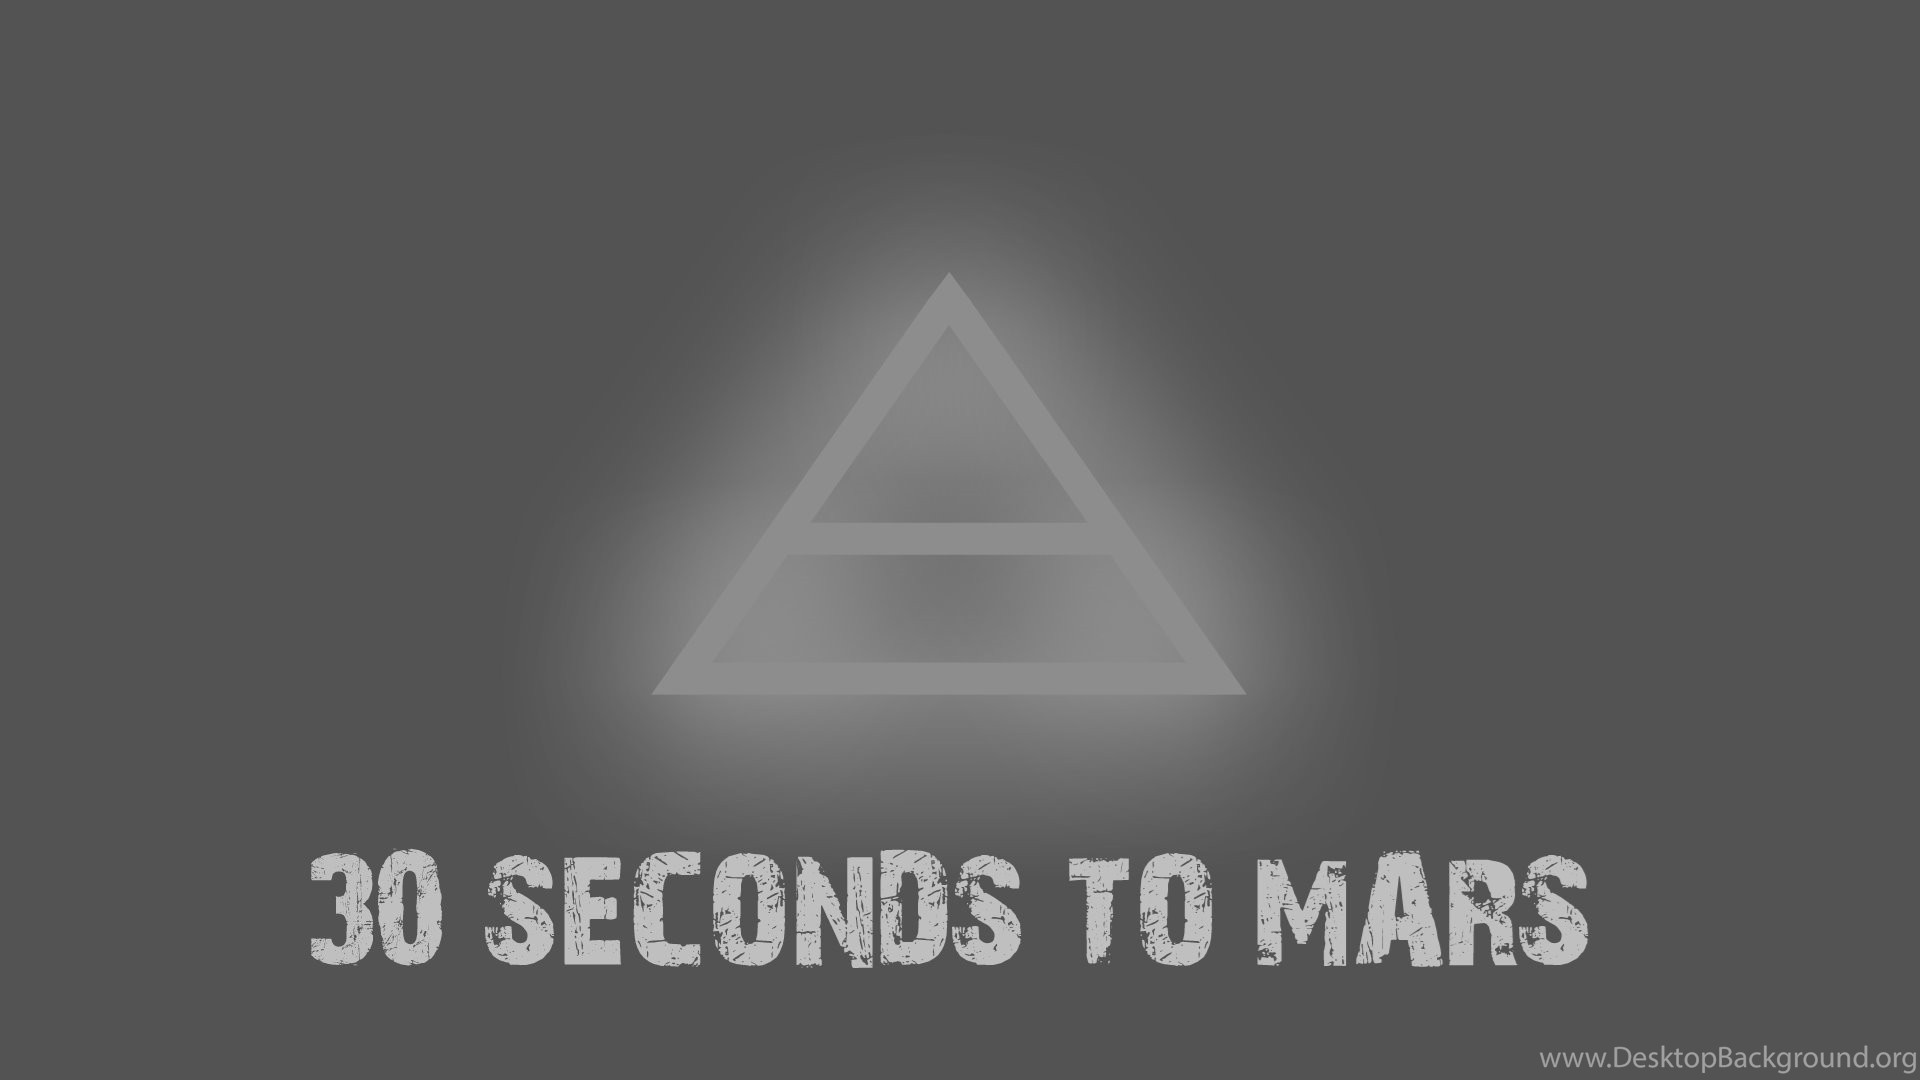 30 Seconds To Mars Wallpapers By Livencore On Deviantart Desktop